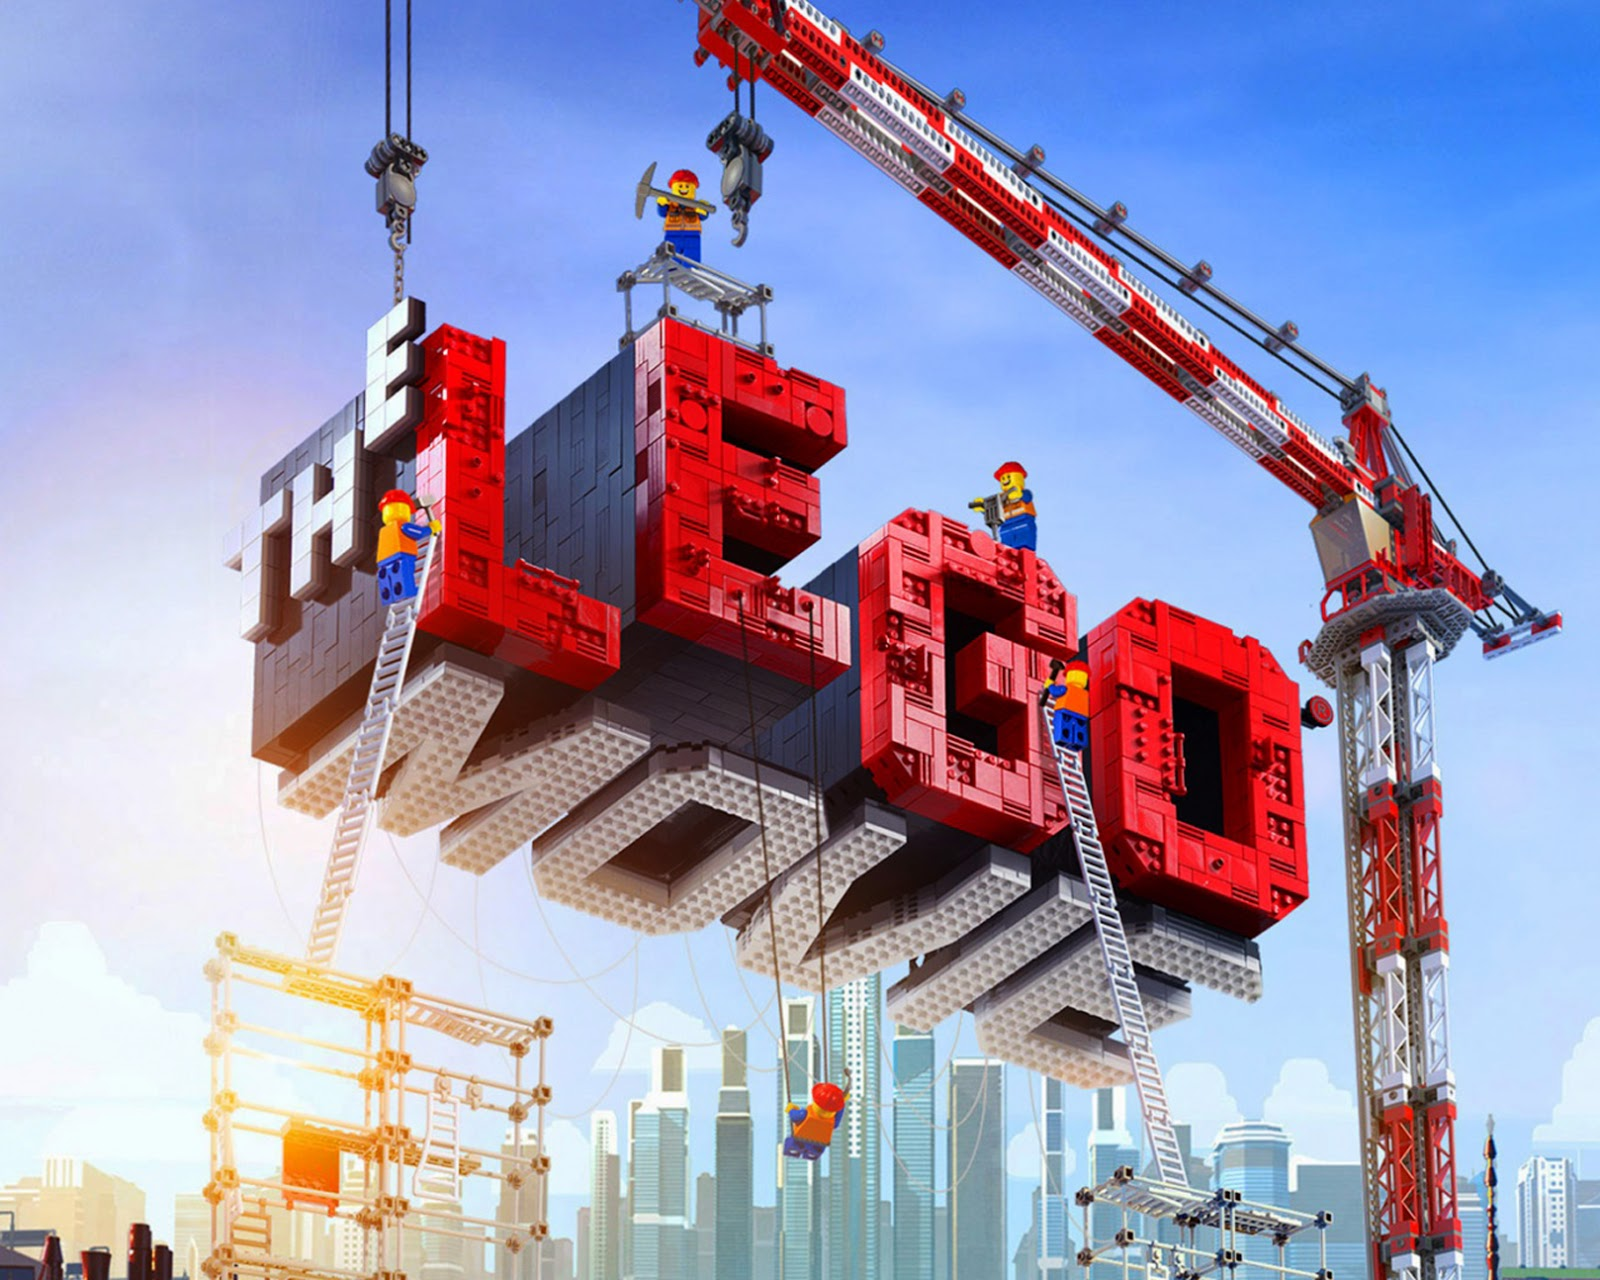 Lego Movie 2014 HD Wallpaper